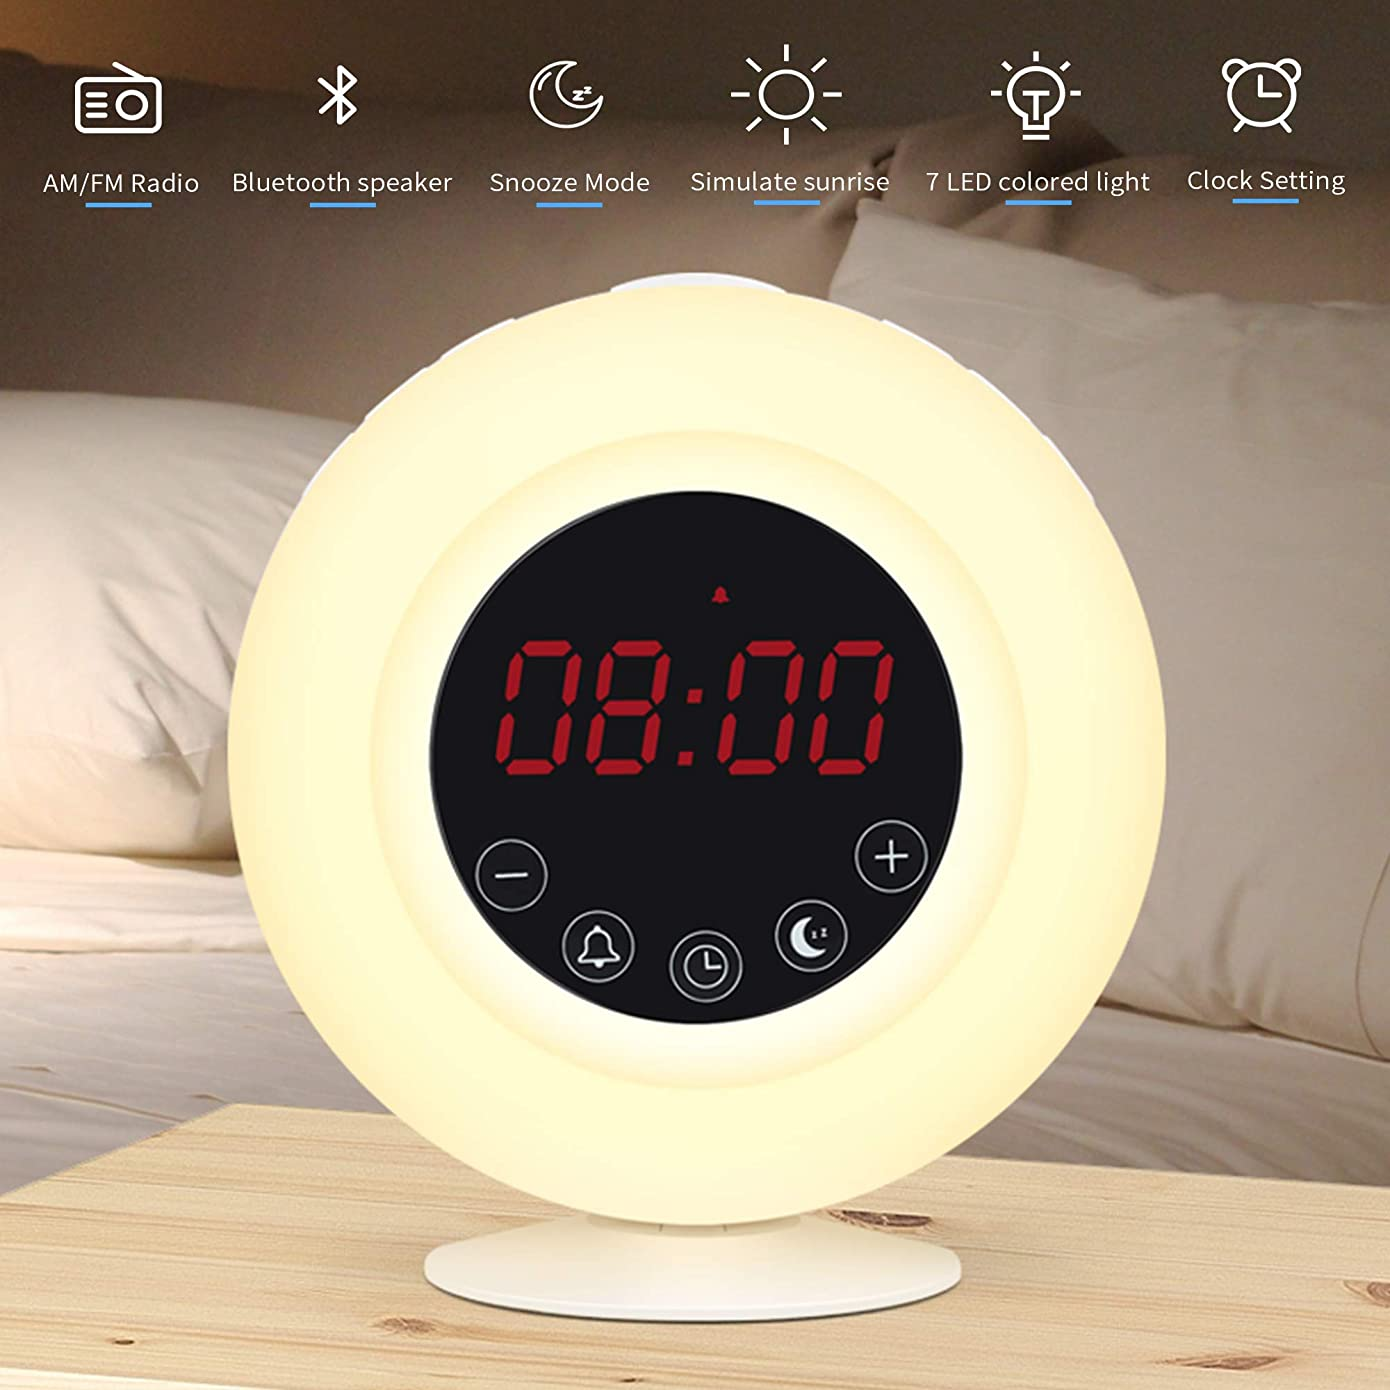 Sunrise Alarm Clock Radio for Kids, AM/FM, Wireless Bluetooth Speaker, Snooze, 7 Color Lights, Digital Touch Control, 3 Levels LED Screen Brightness and 10 Levels Brightness in Warm White Light